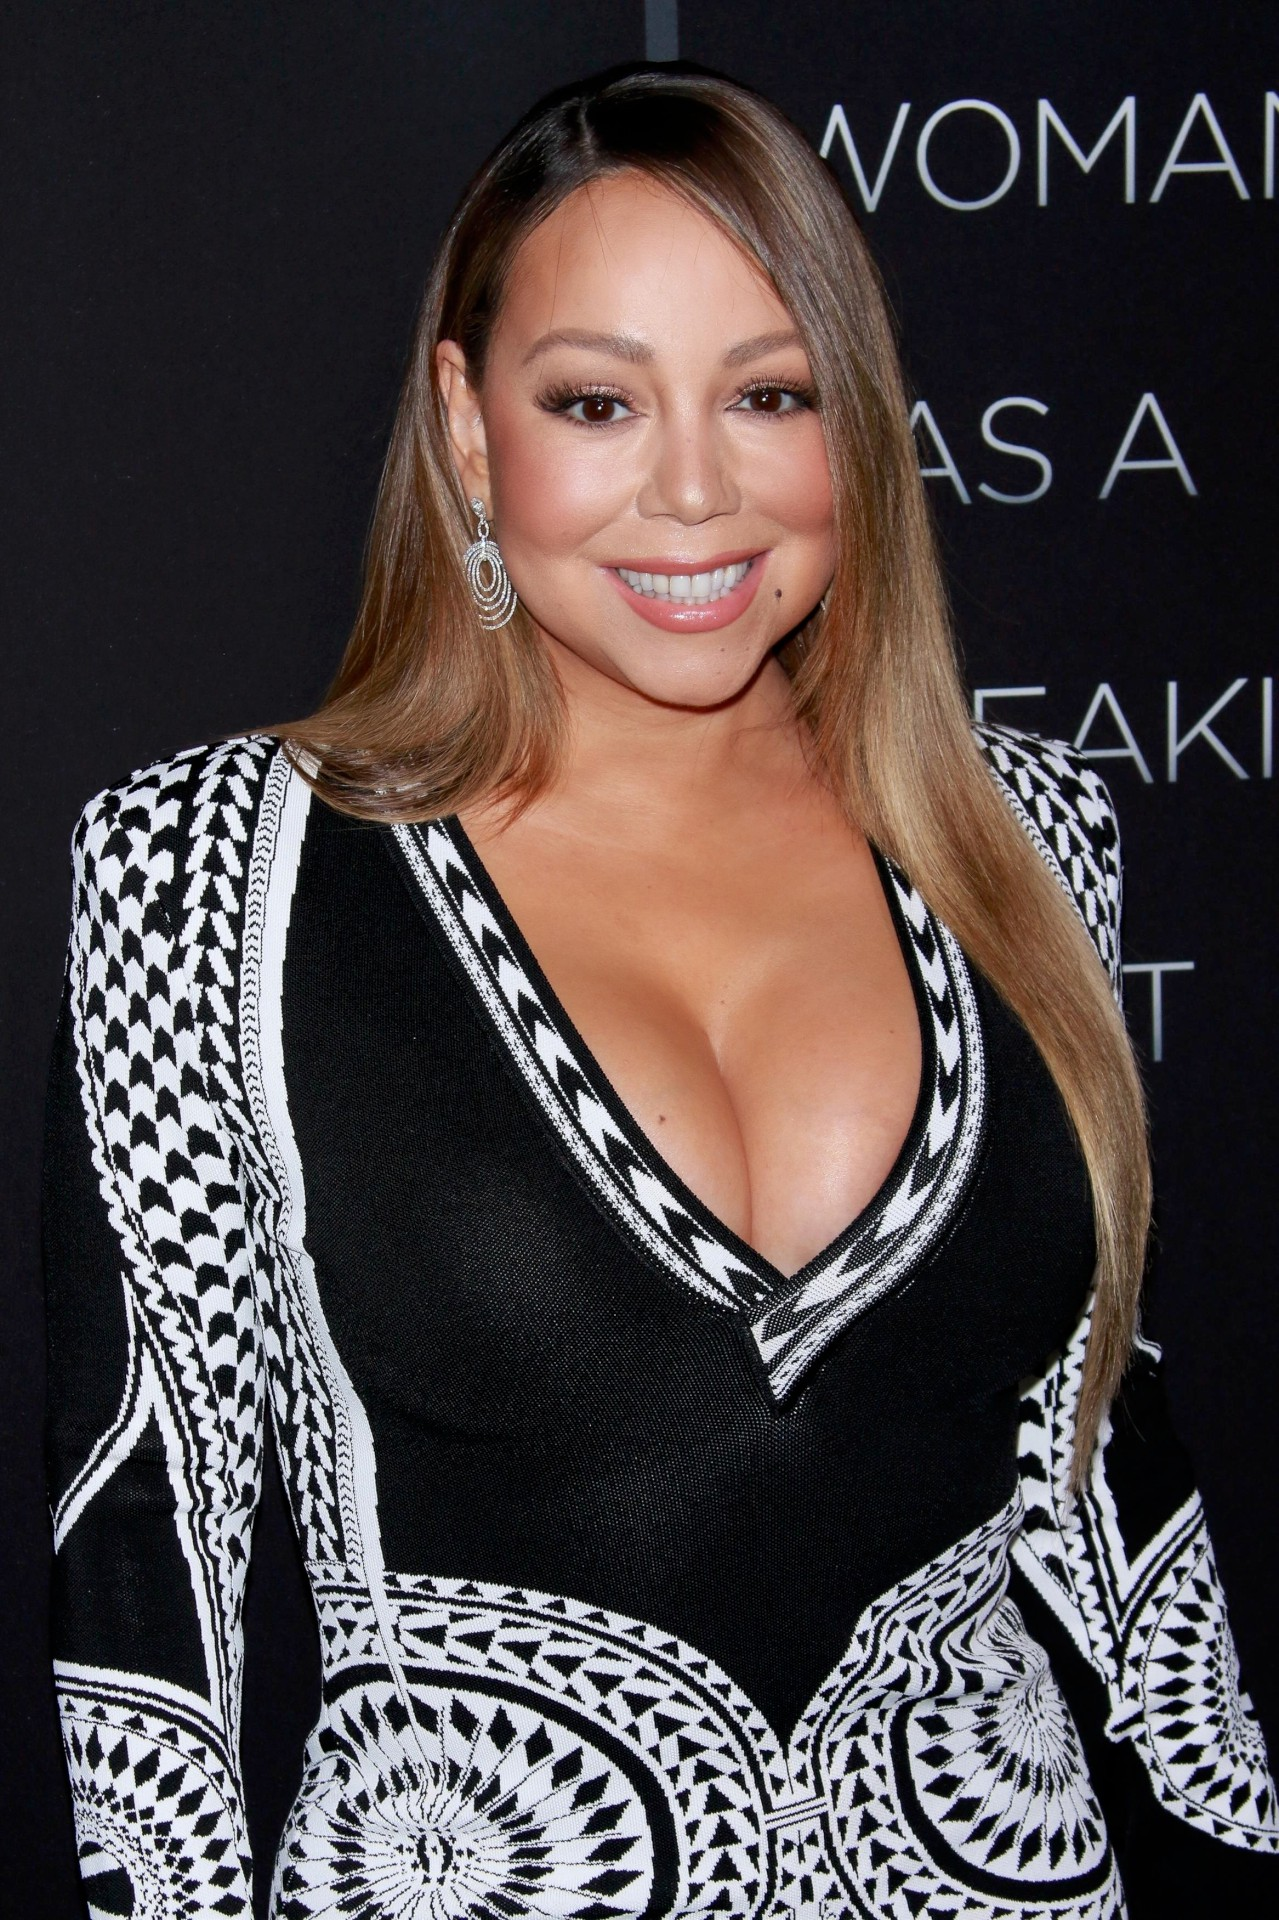 Mariah Carey Big Breasts